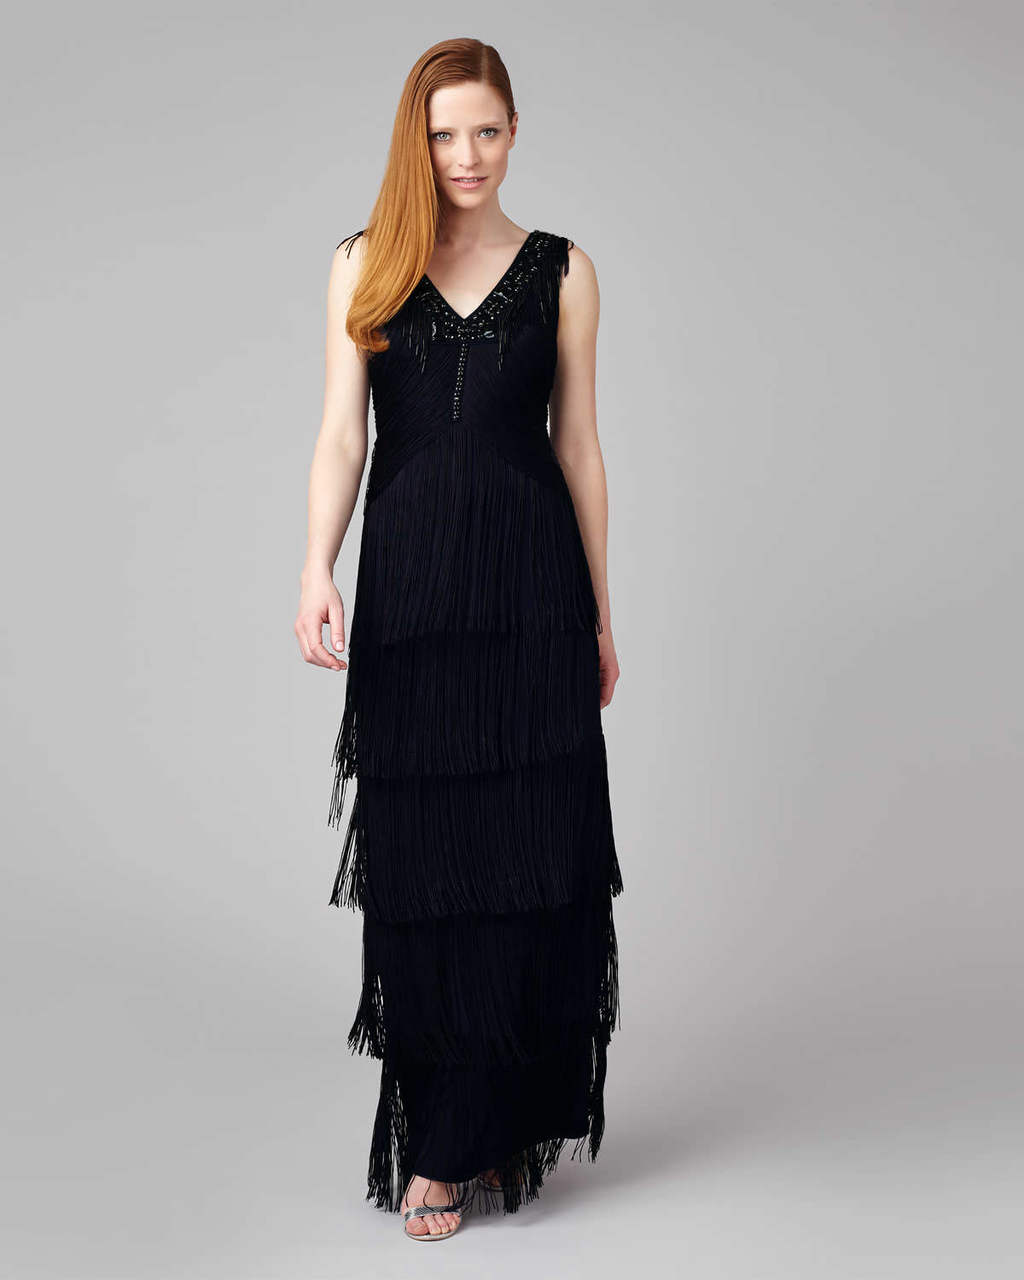 Sable Fringe Dress - neckline: v-neck; pattern: plain; sleeve style: sleeveless; style: maxi dress; predominant colour: navy; occasions: evening; length: floor length; fit: body skimming; fibres: polyester/polyamide - stretch; sleeve length: sleeveless; hip detail: ruffles/tiers/tie detail at hip; pattern type: fabric; texture group: other - light to midweight; embellishment: fringing; season: s/s 2016; wardrobe: event